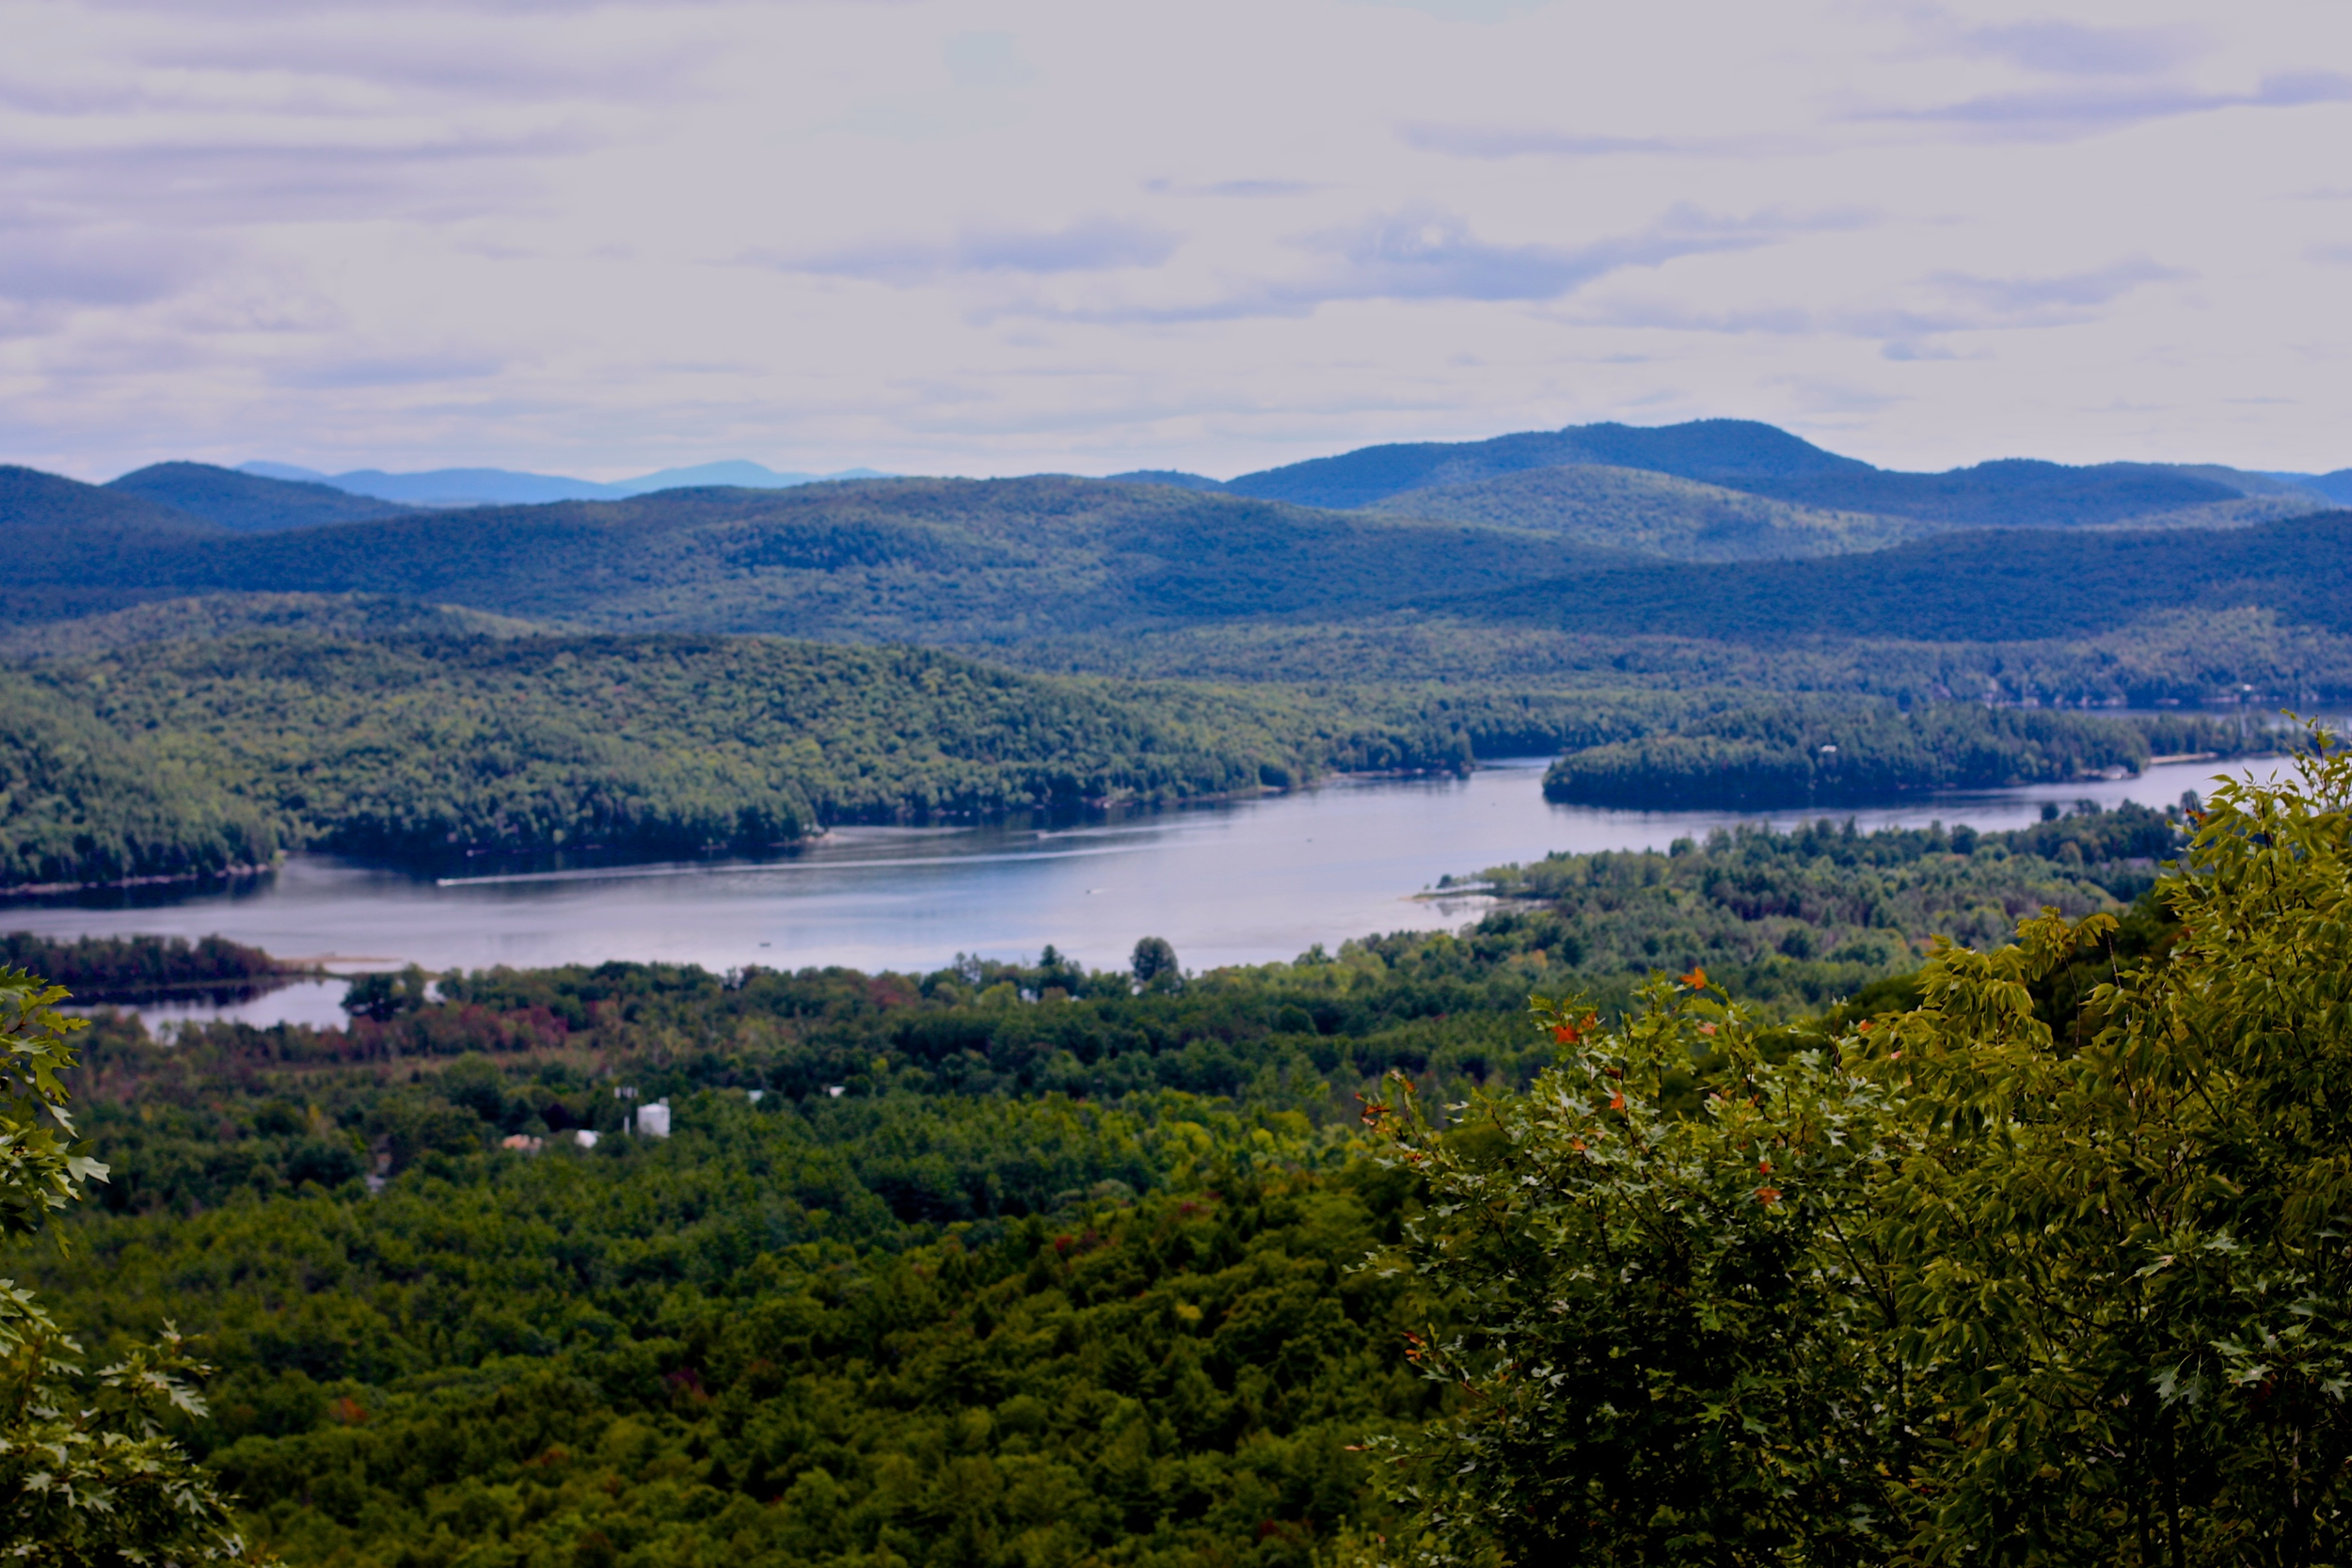 Schroon Lake viewed from Mt. Severance. Schroon Laker Collection. 2014. Copyright. All Rights Reserved